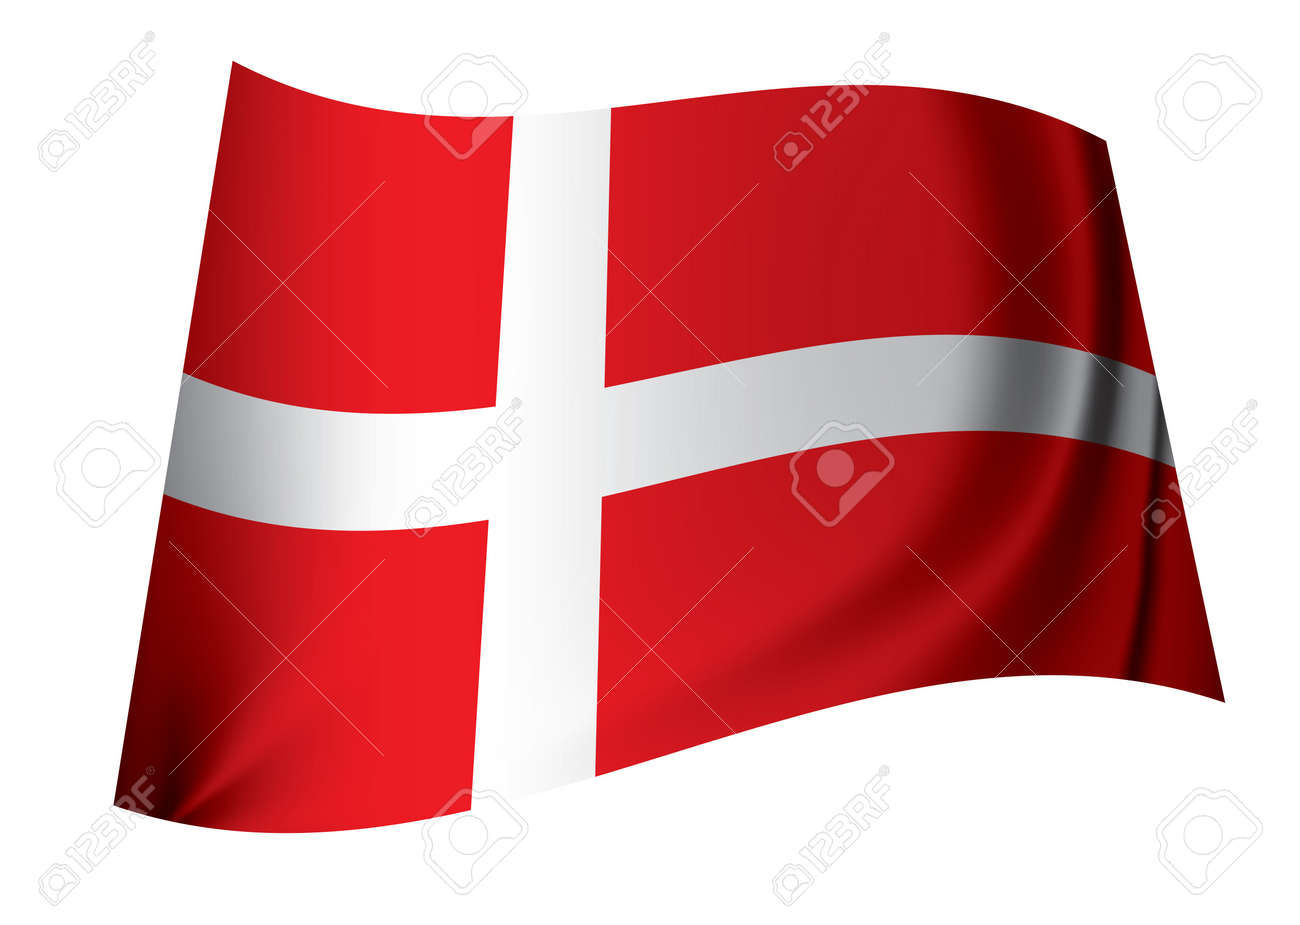 red and white danish flag floating in the wind icon for denmark Stock Photo - 7635495